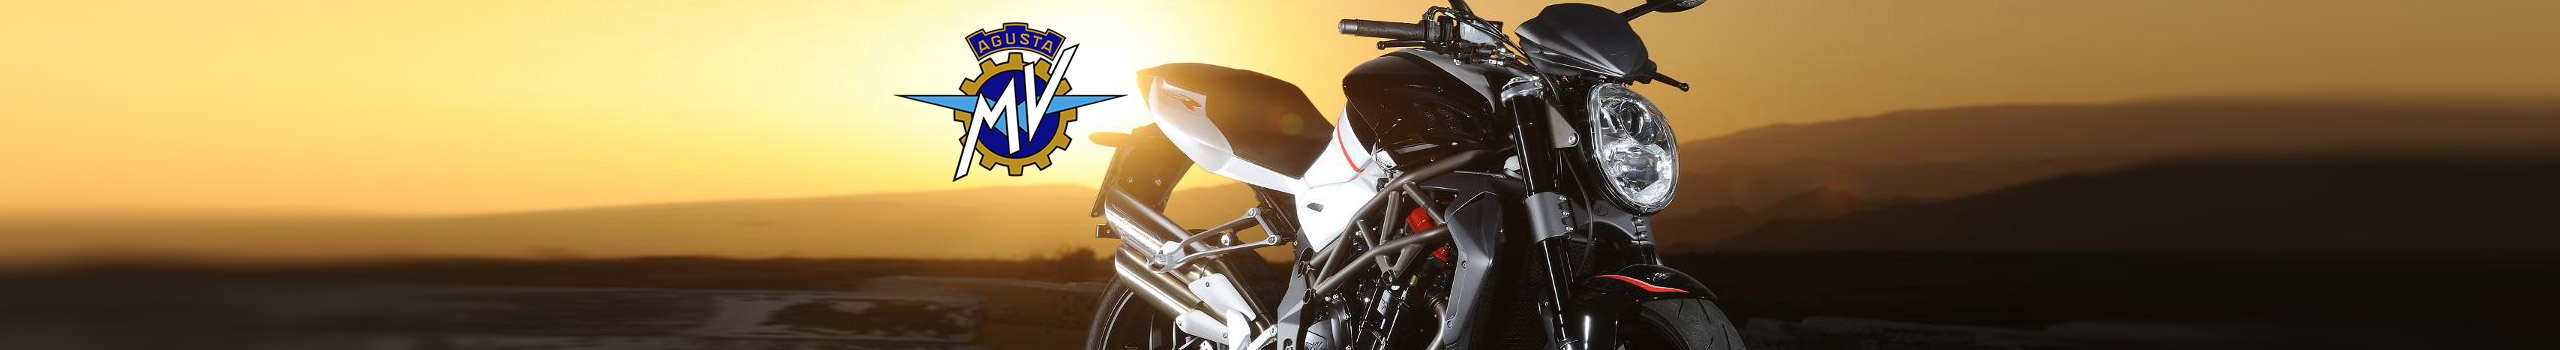 MV Agusta motorcycles image